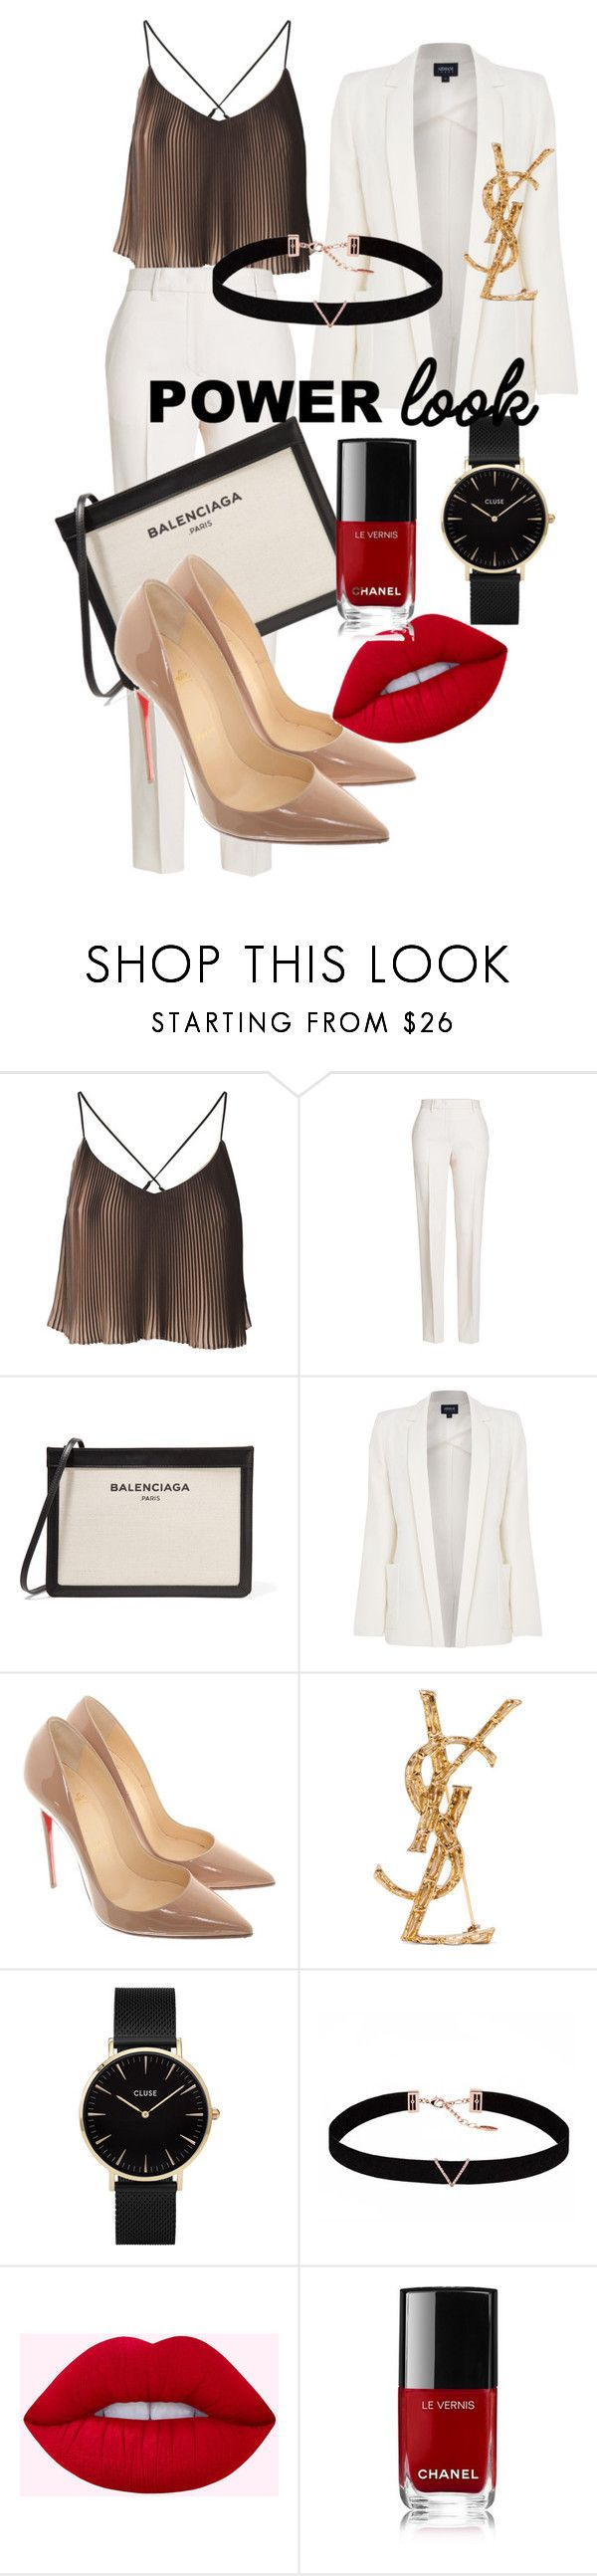 """""""Power look"""" by irma-suharto ❤ liked on Polyvore featuring Jil Sander, Balenciaga, Armani Jeans, Christian Louboutin, Yves Saint Laurent, CLUSE, Astrid & Miyu and Chanel"""